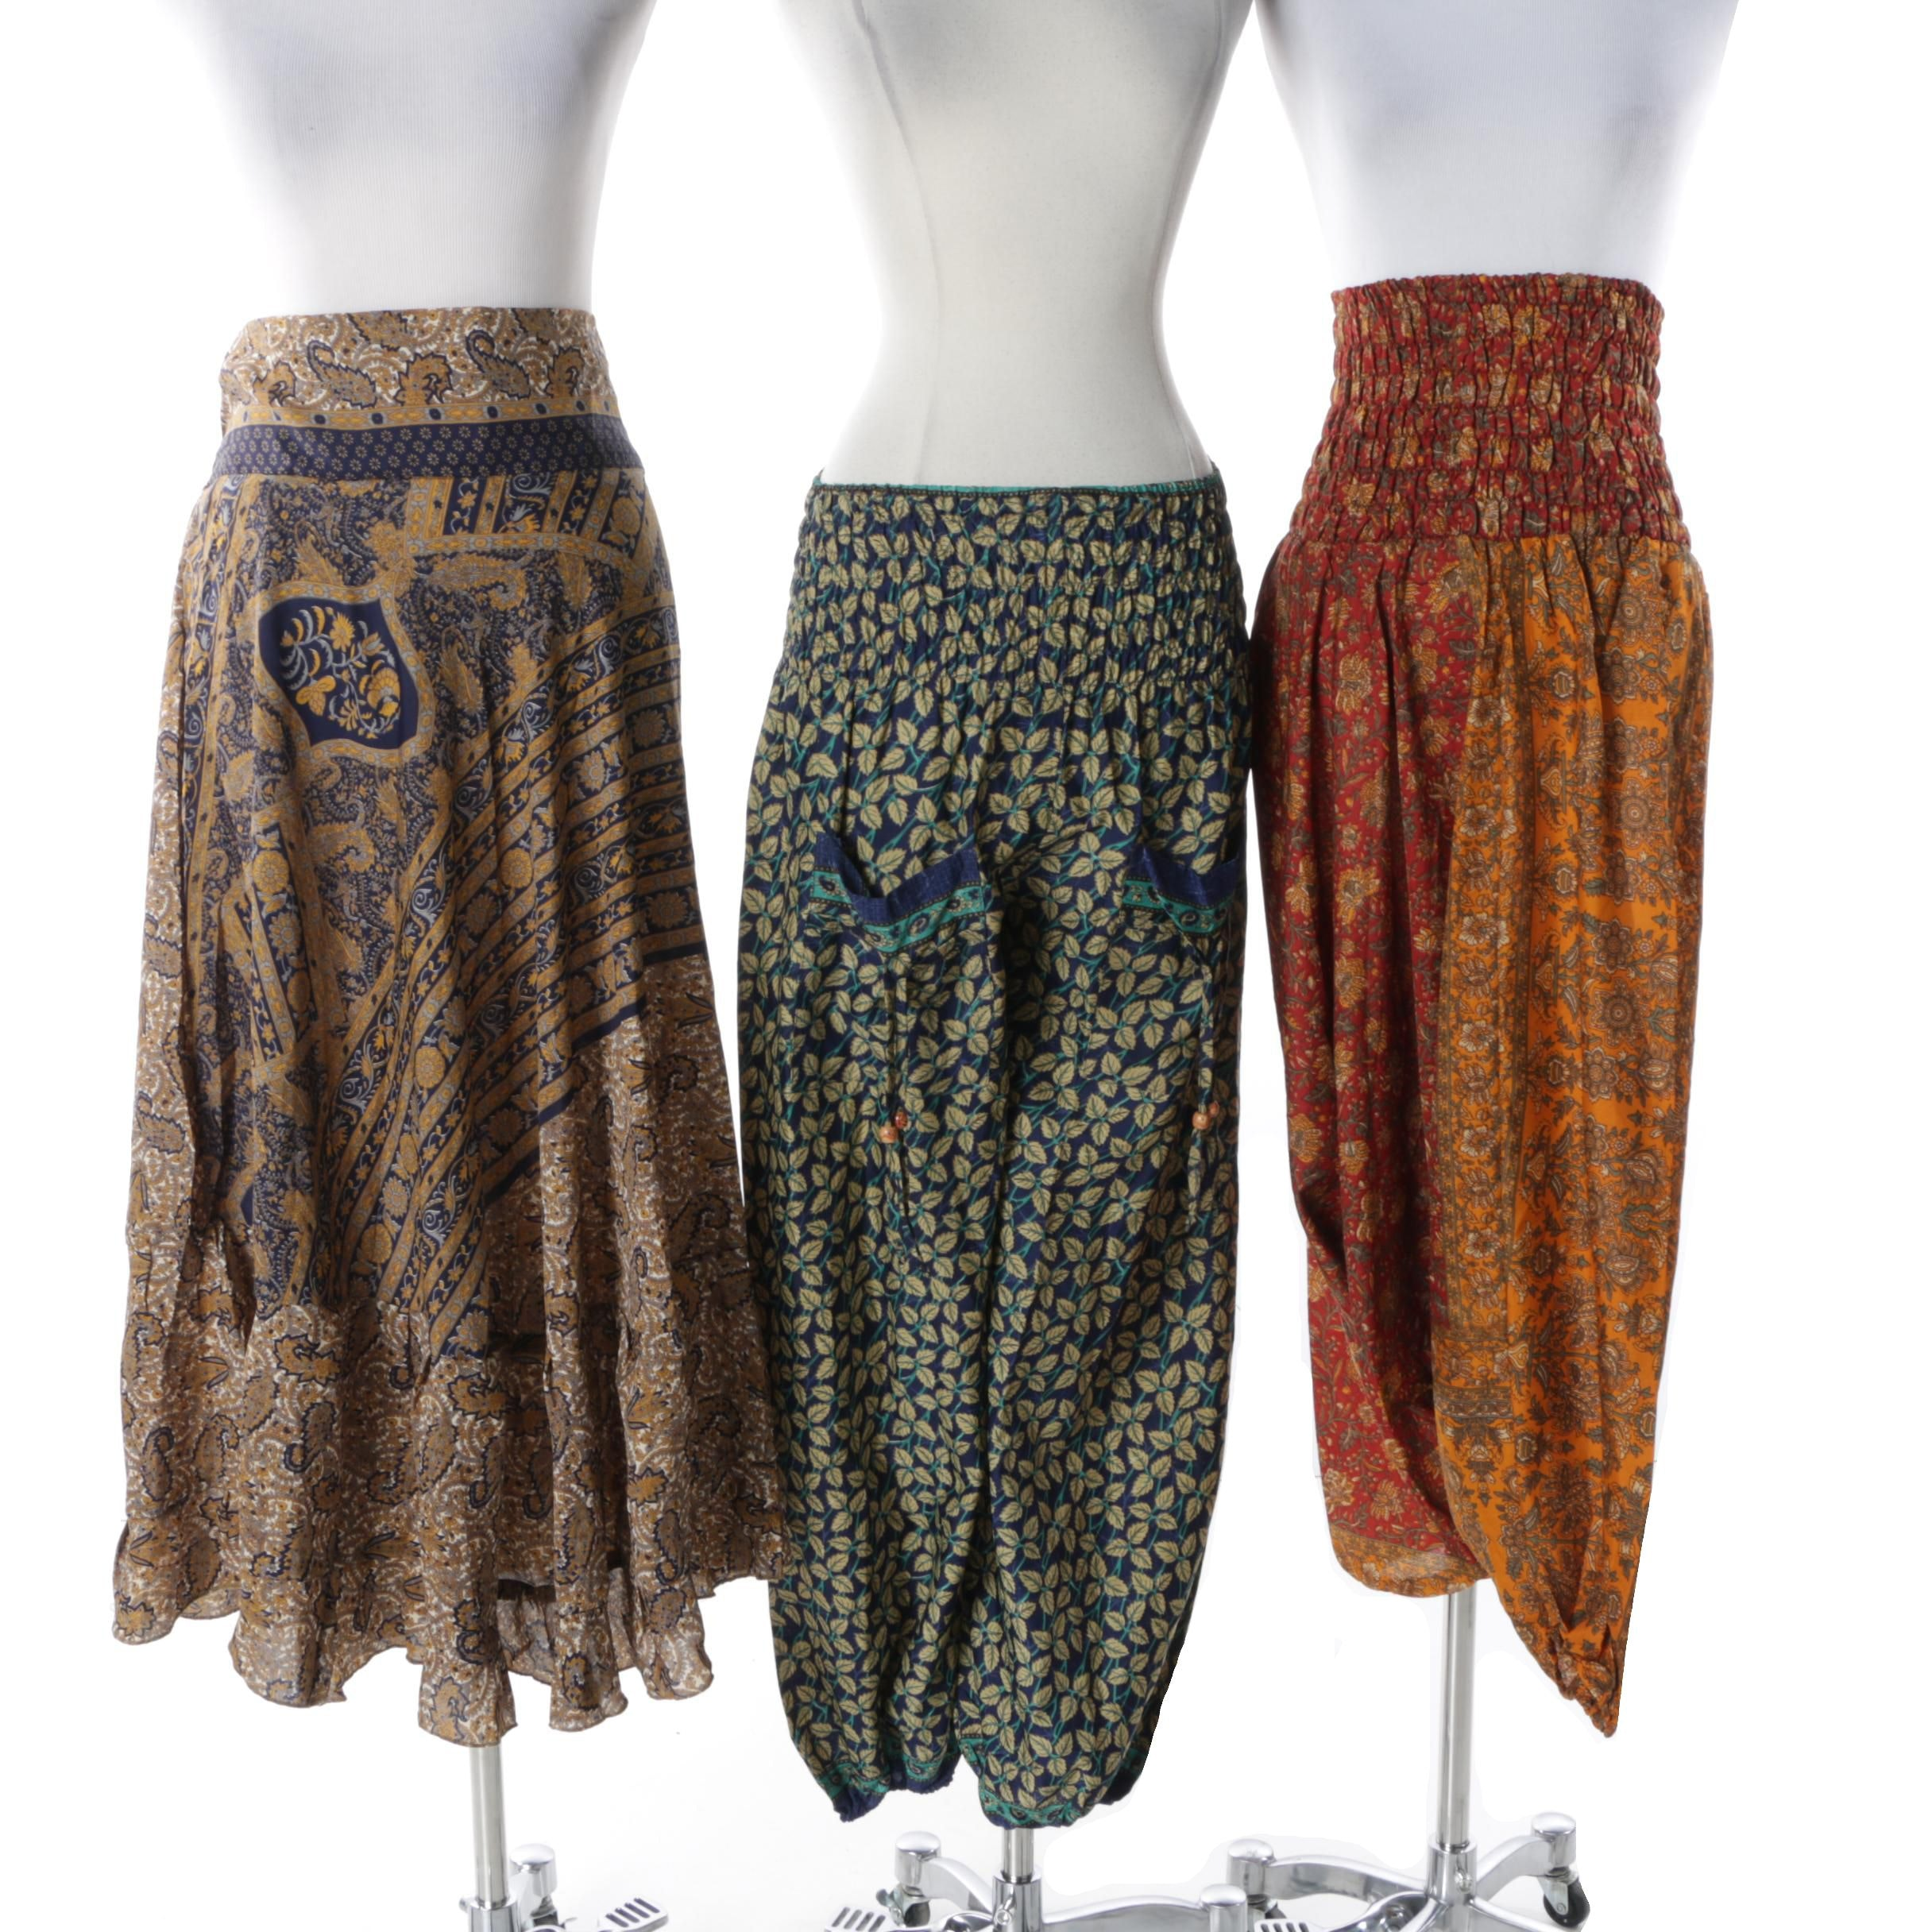 One of a Kind Vintage Sari Convertible Clothing Pieces